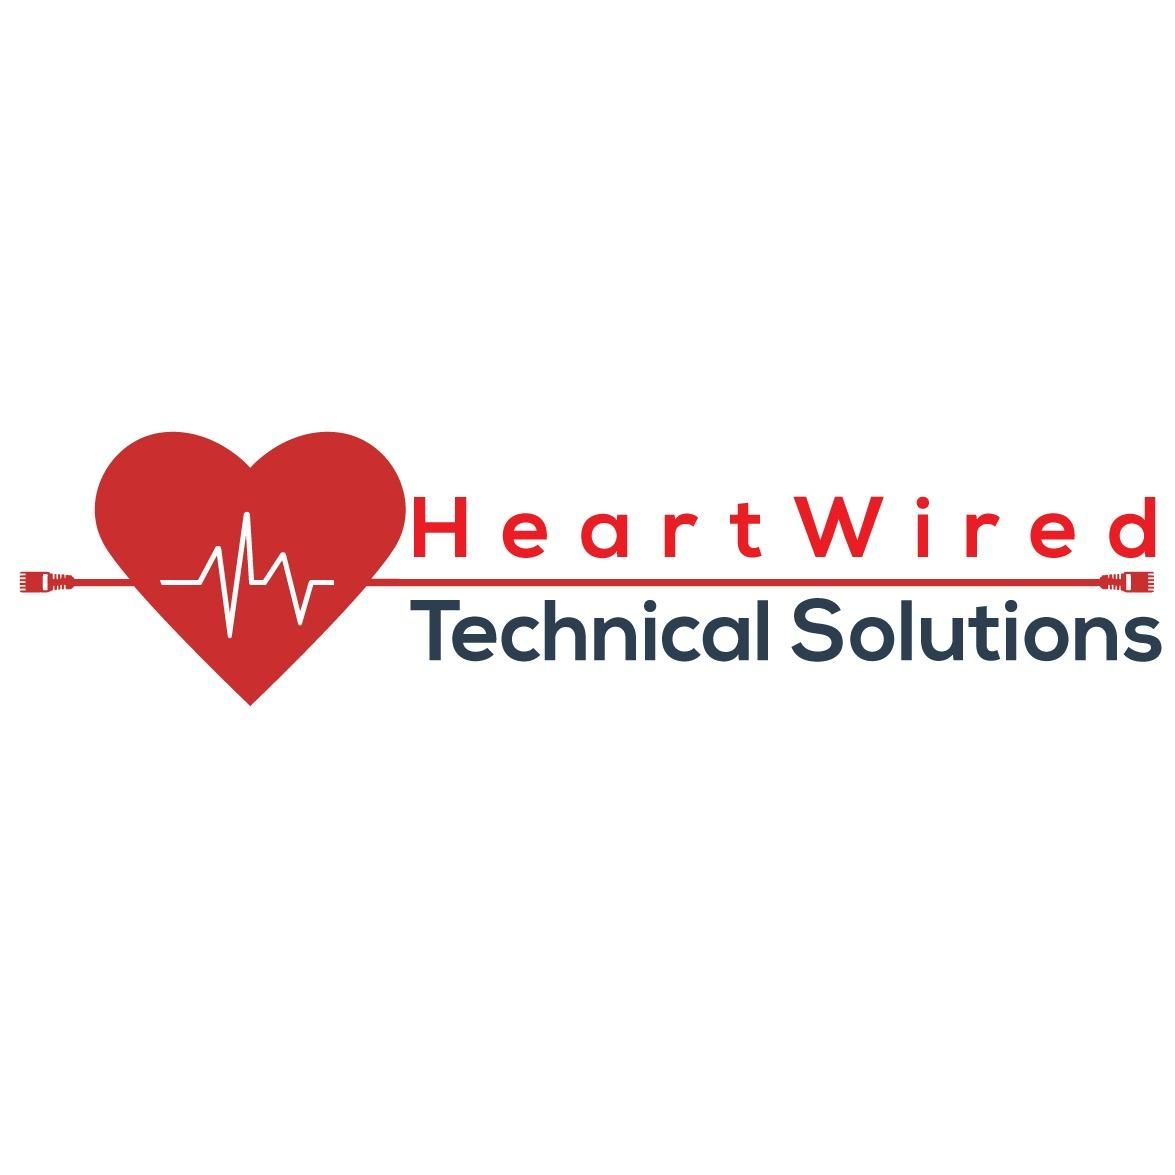 HeartWired Technical Solutions - Jacksonville, FL 32210 - (904)660-5185 | ShowMeLocal.com